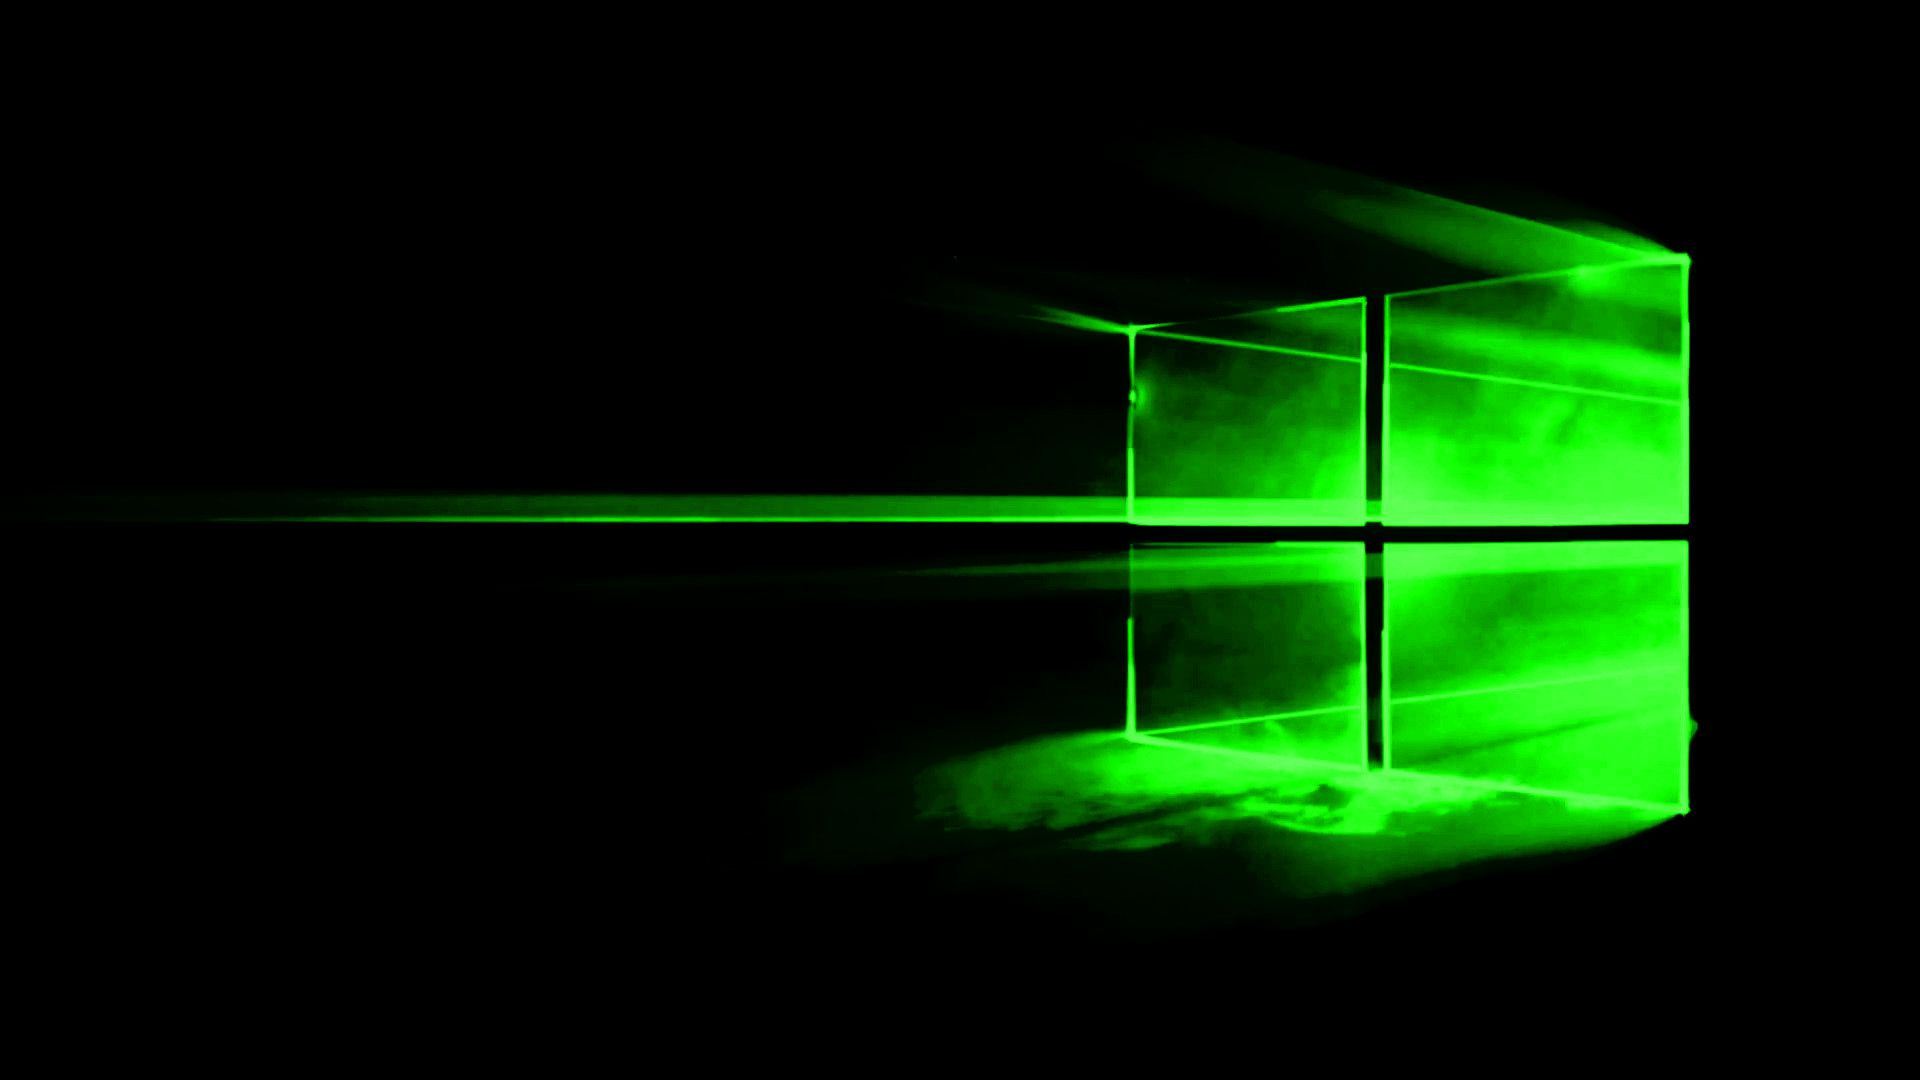 1920x1080 Green Windows 10 Wallpaper Imgur Green Windows Windows 10 Desktop Wallpaper Black